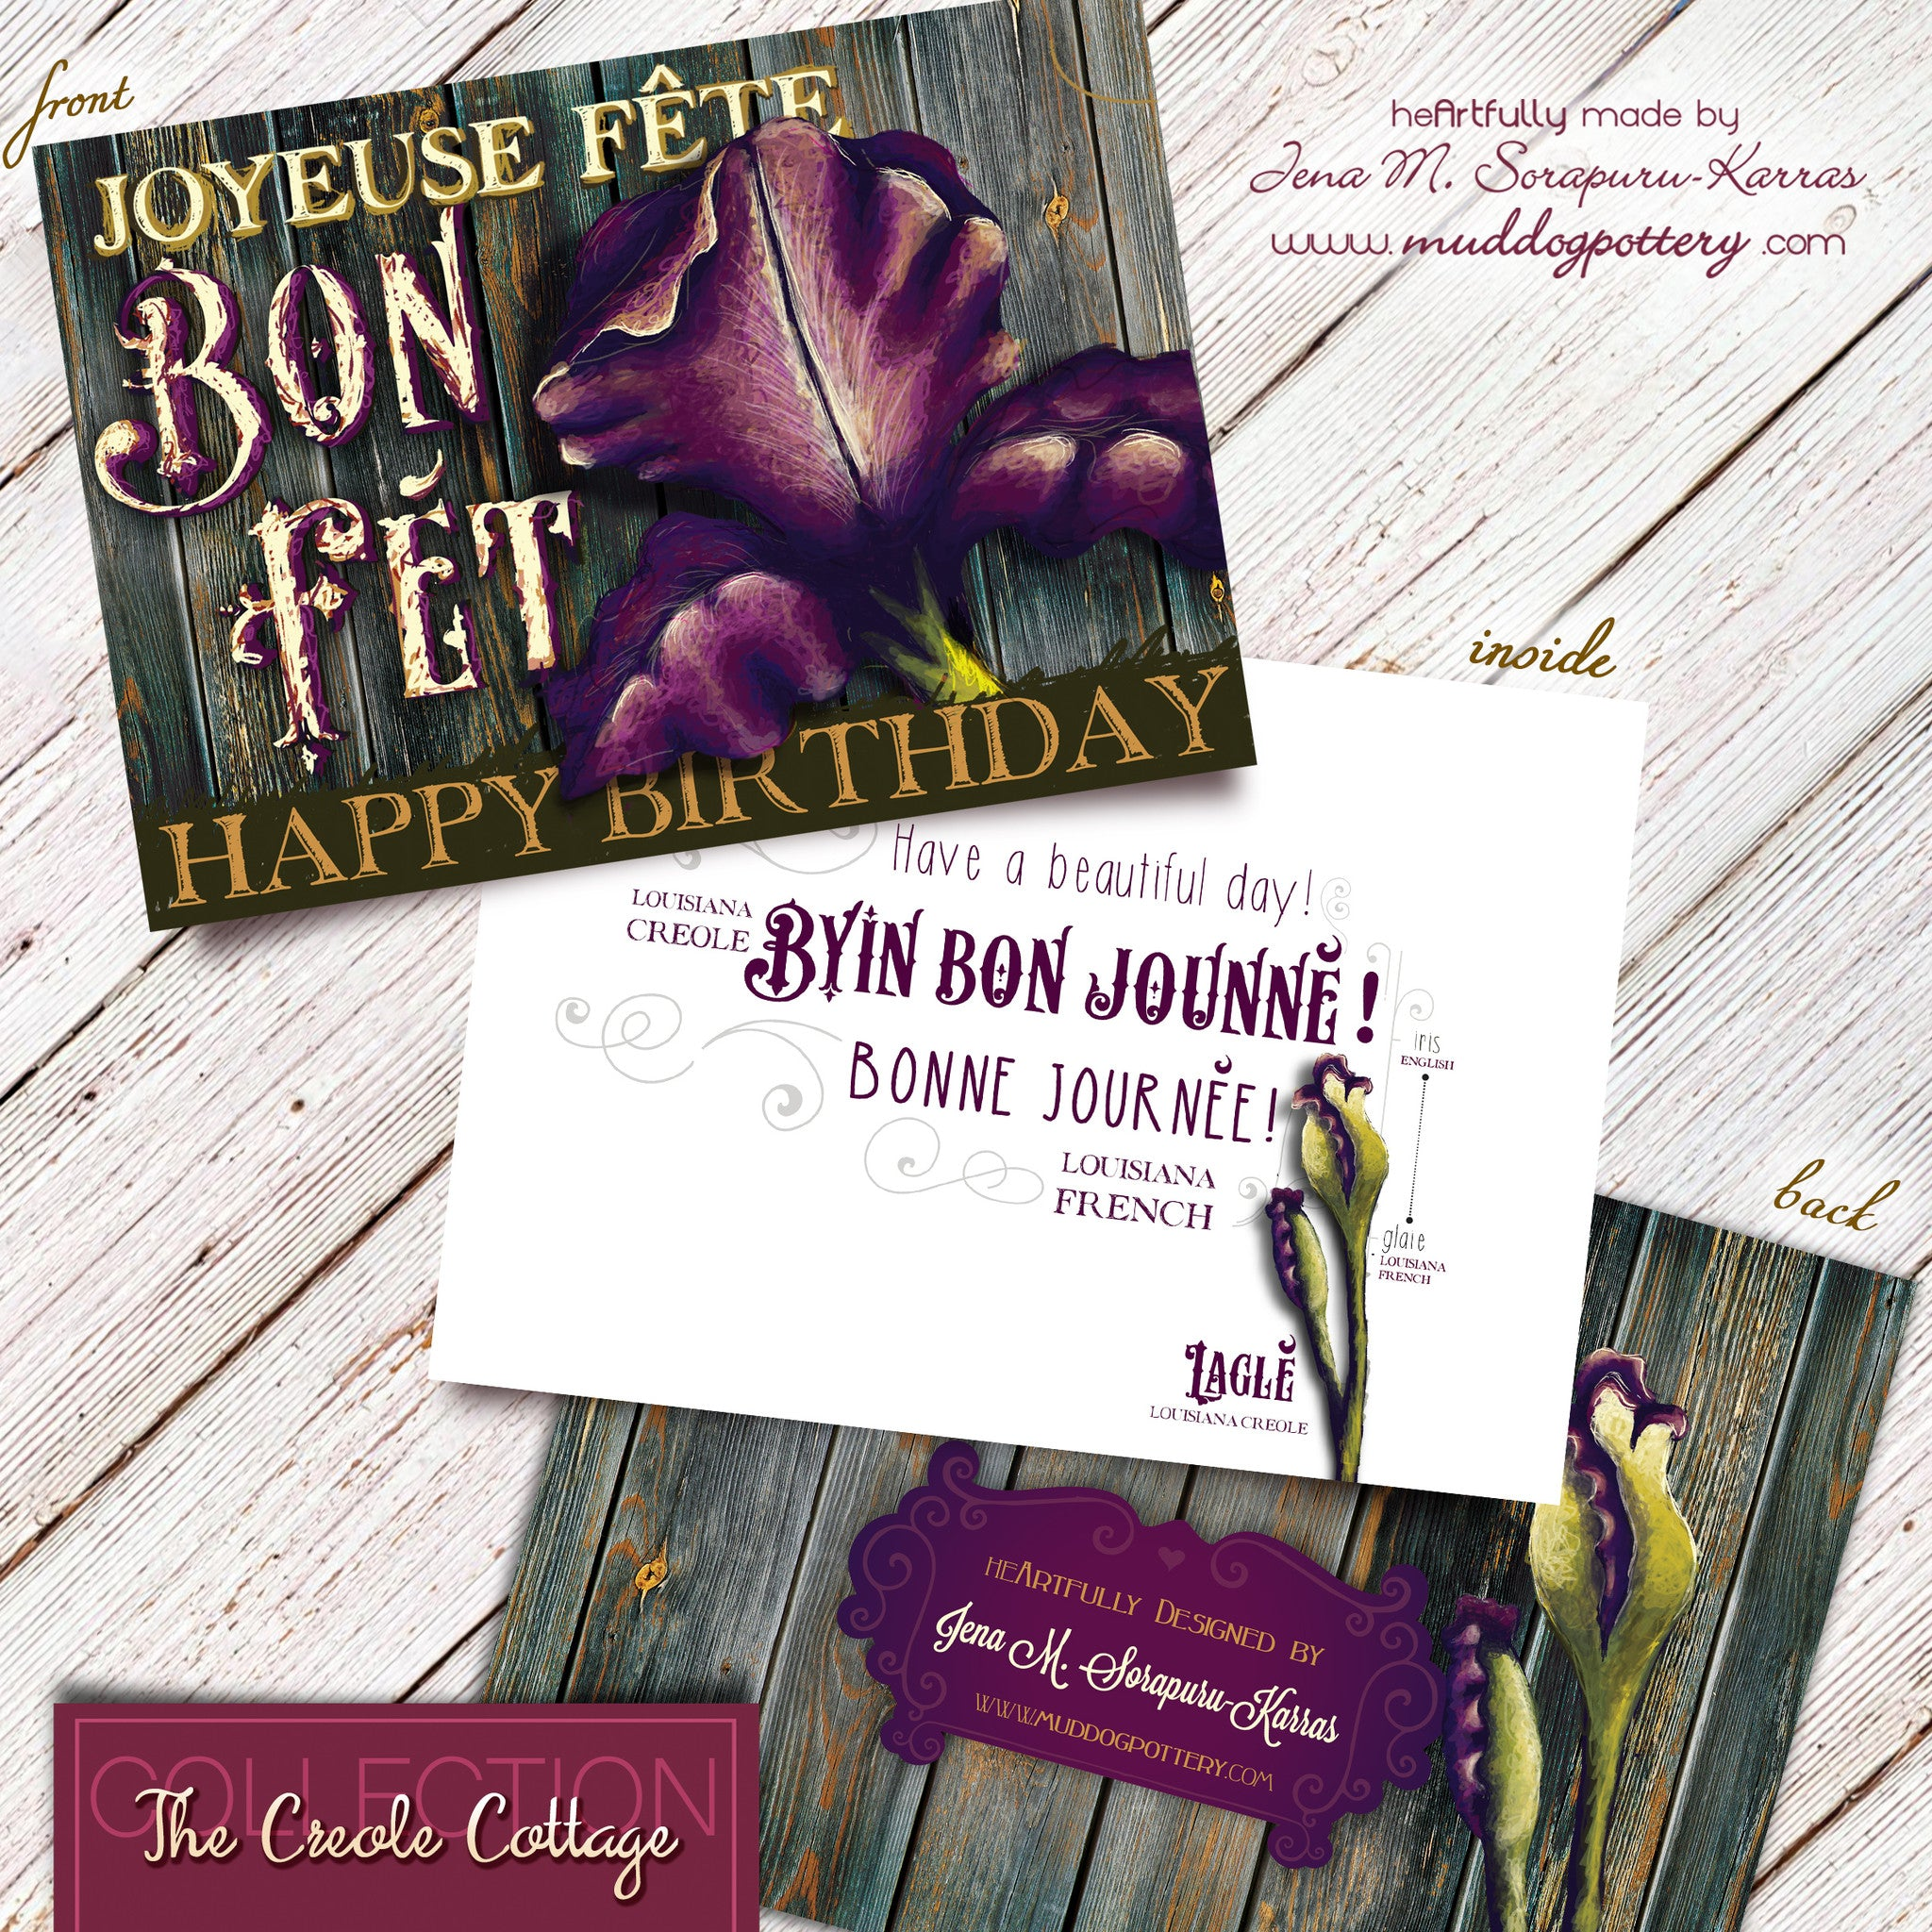 Louisiana Purple Iris Birthday Card (The Creole Cottage Collection)